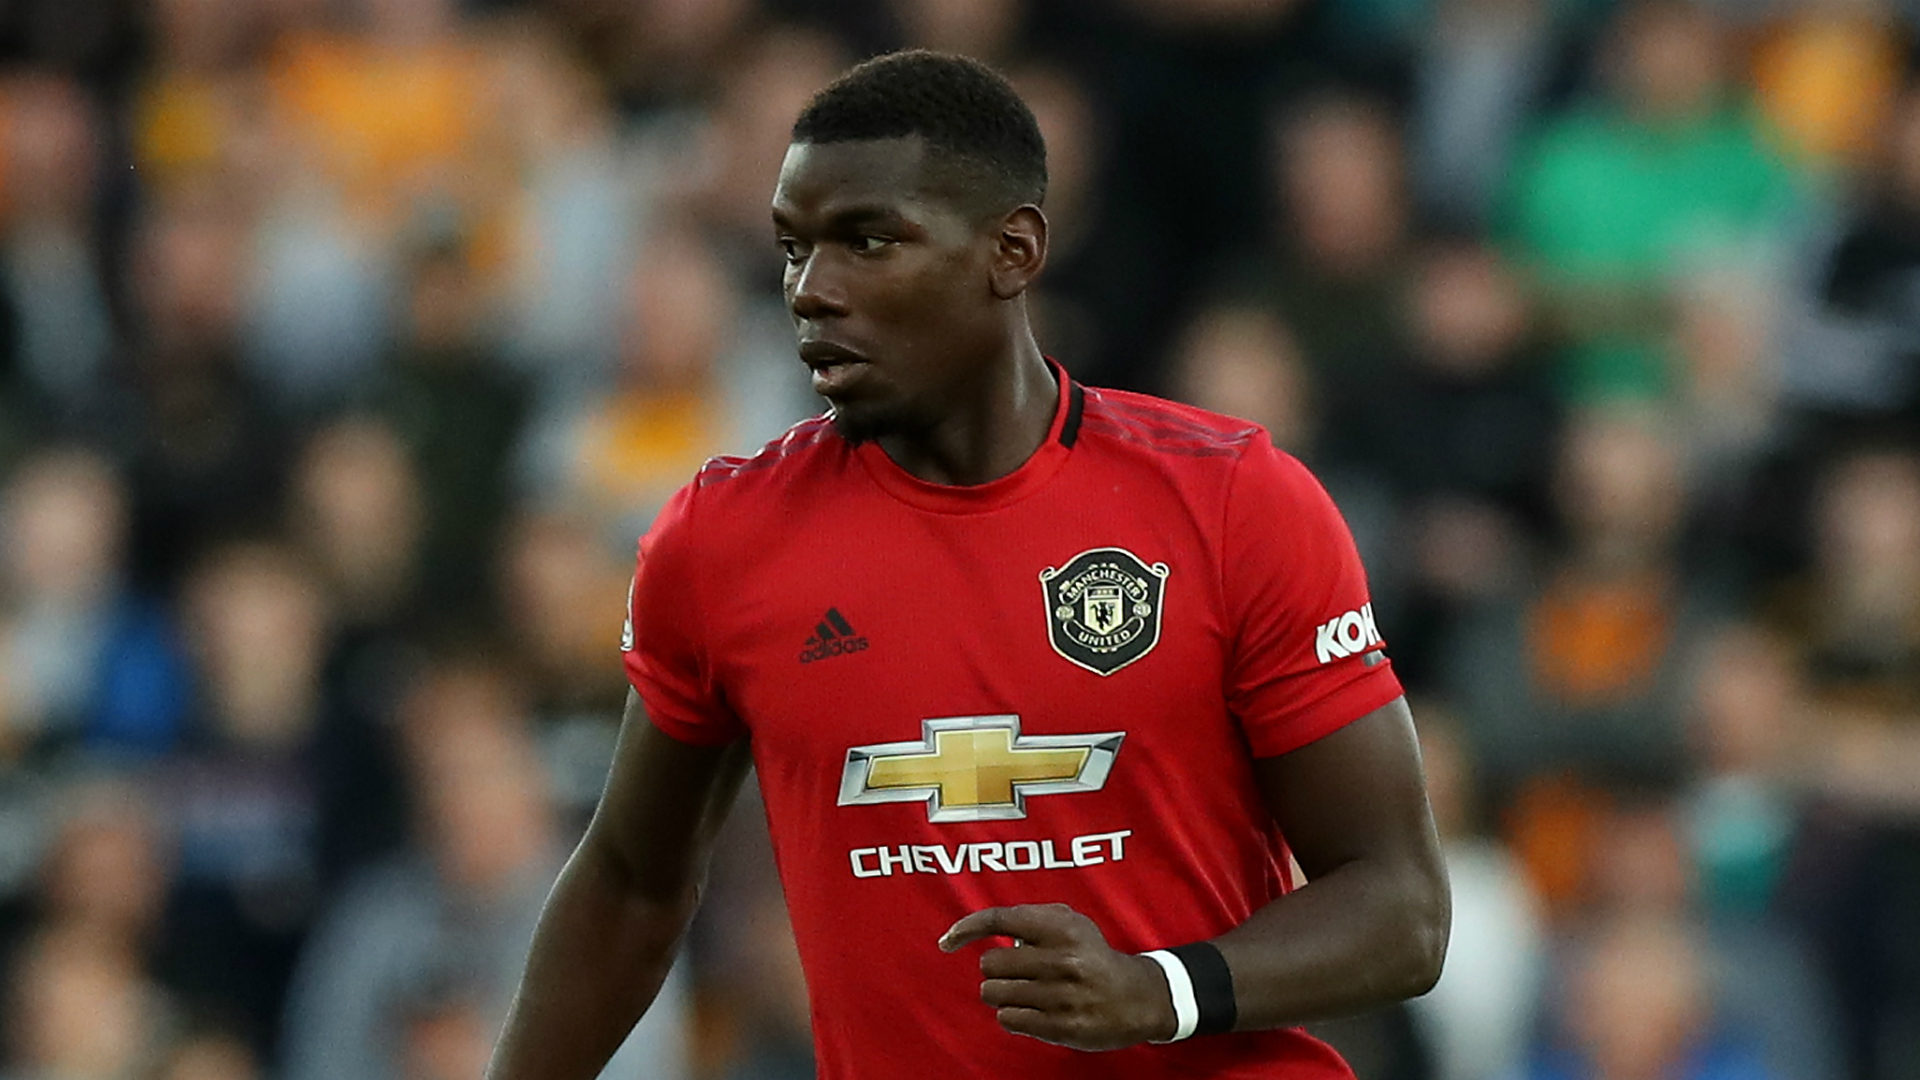 BREAKING NEWS: Manchester United midfielder Pogba ruled out of Leicester City match with ankle injury